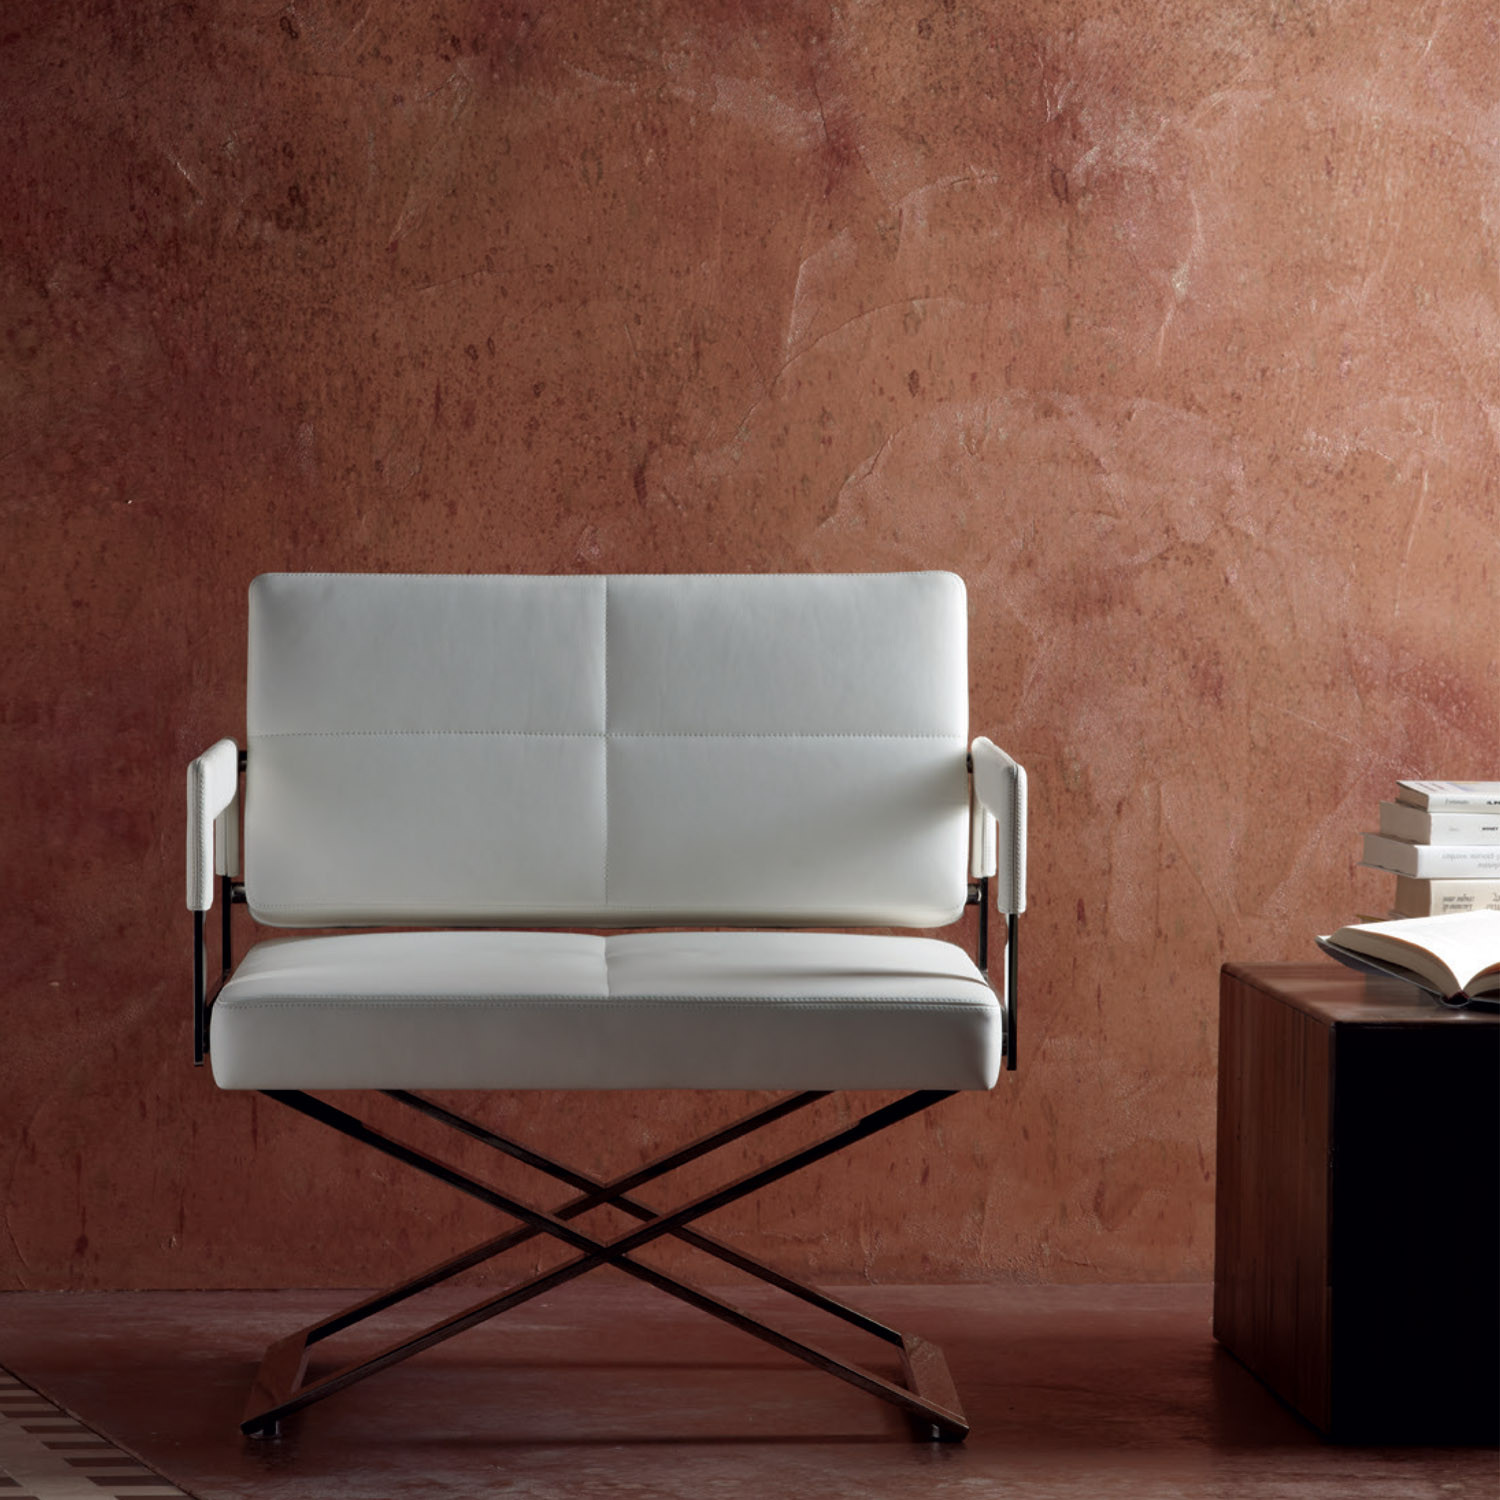 Aster X Armchair from Poltrona Frau